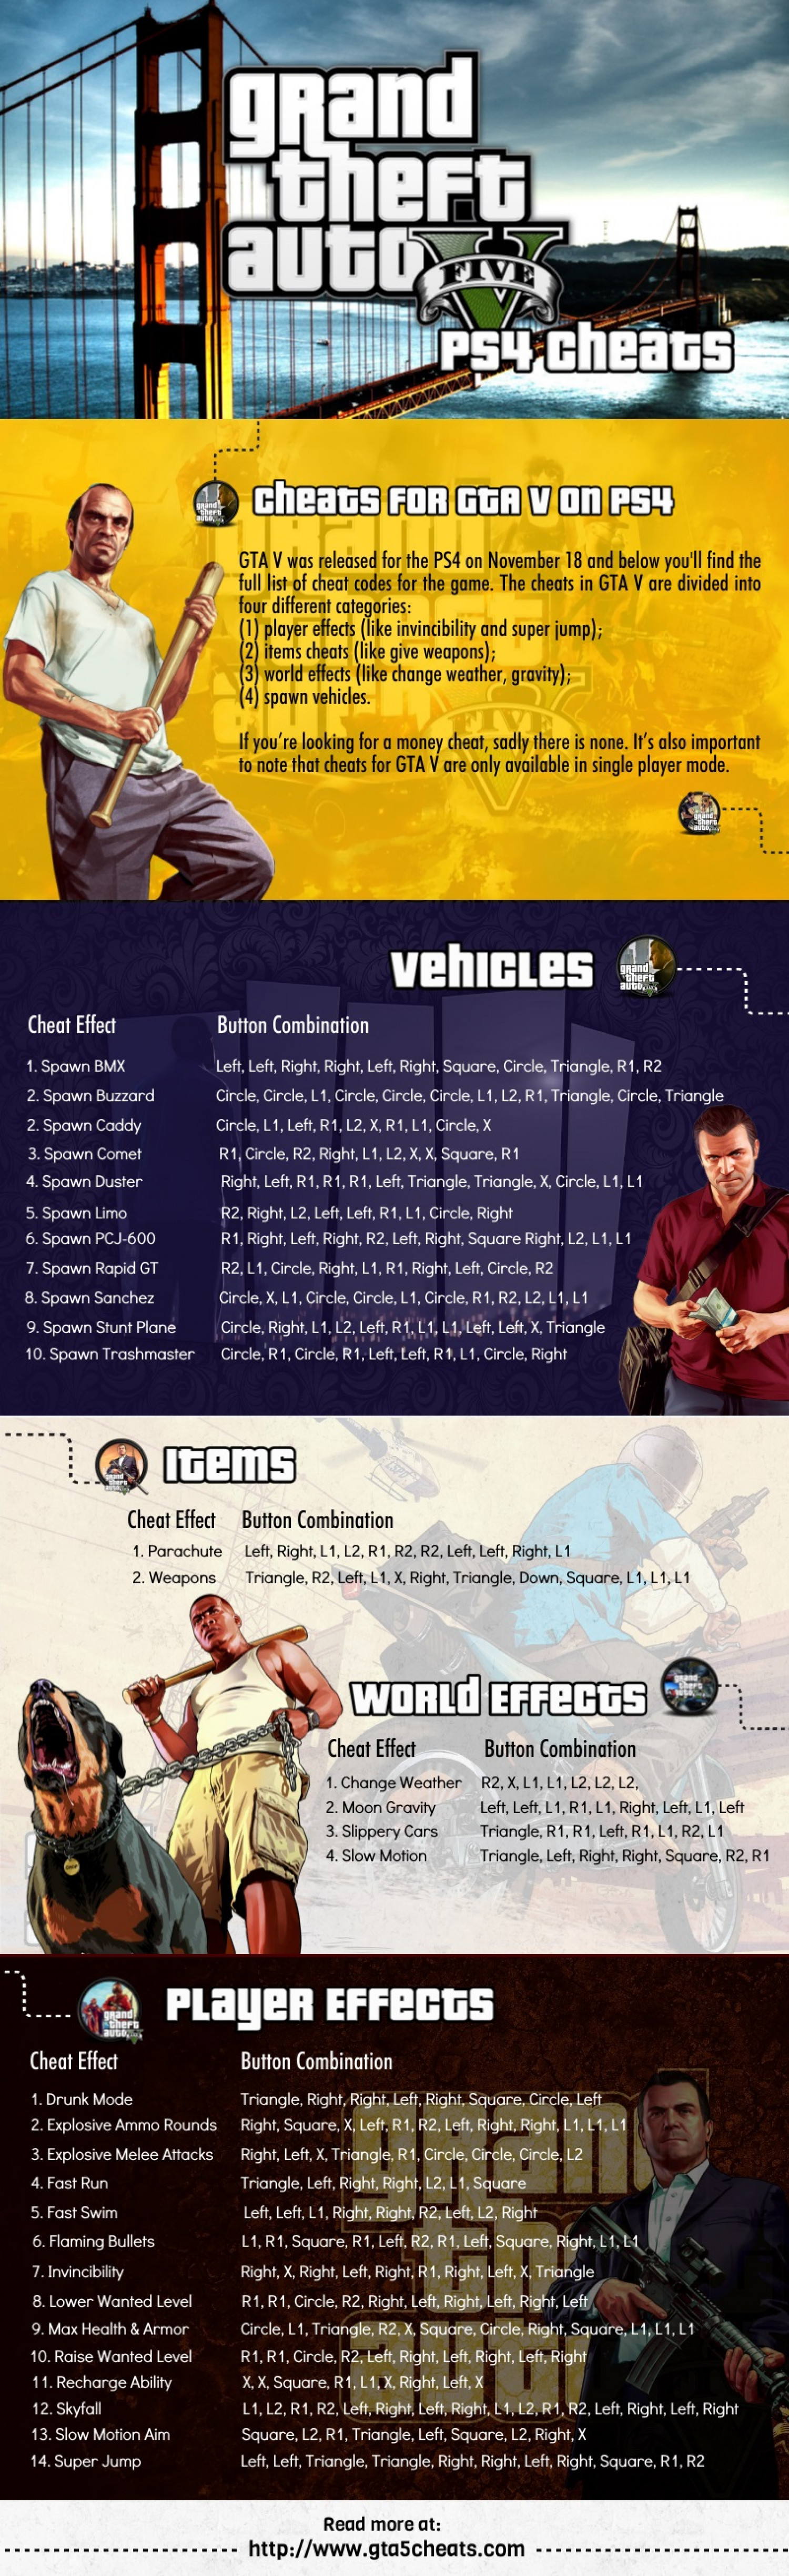 GTA 5 CHEATS - PS4 Infographic